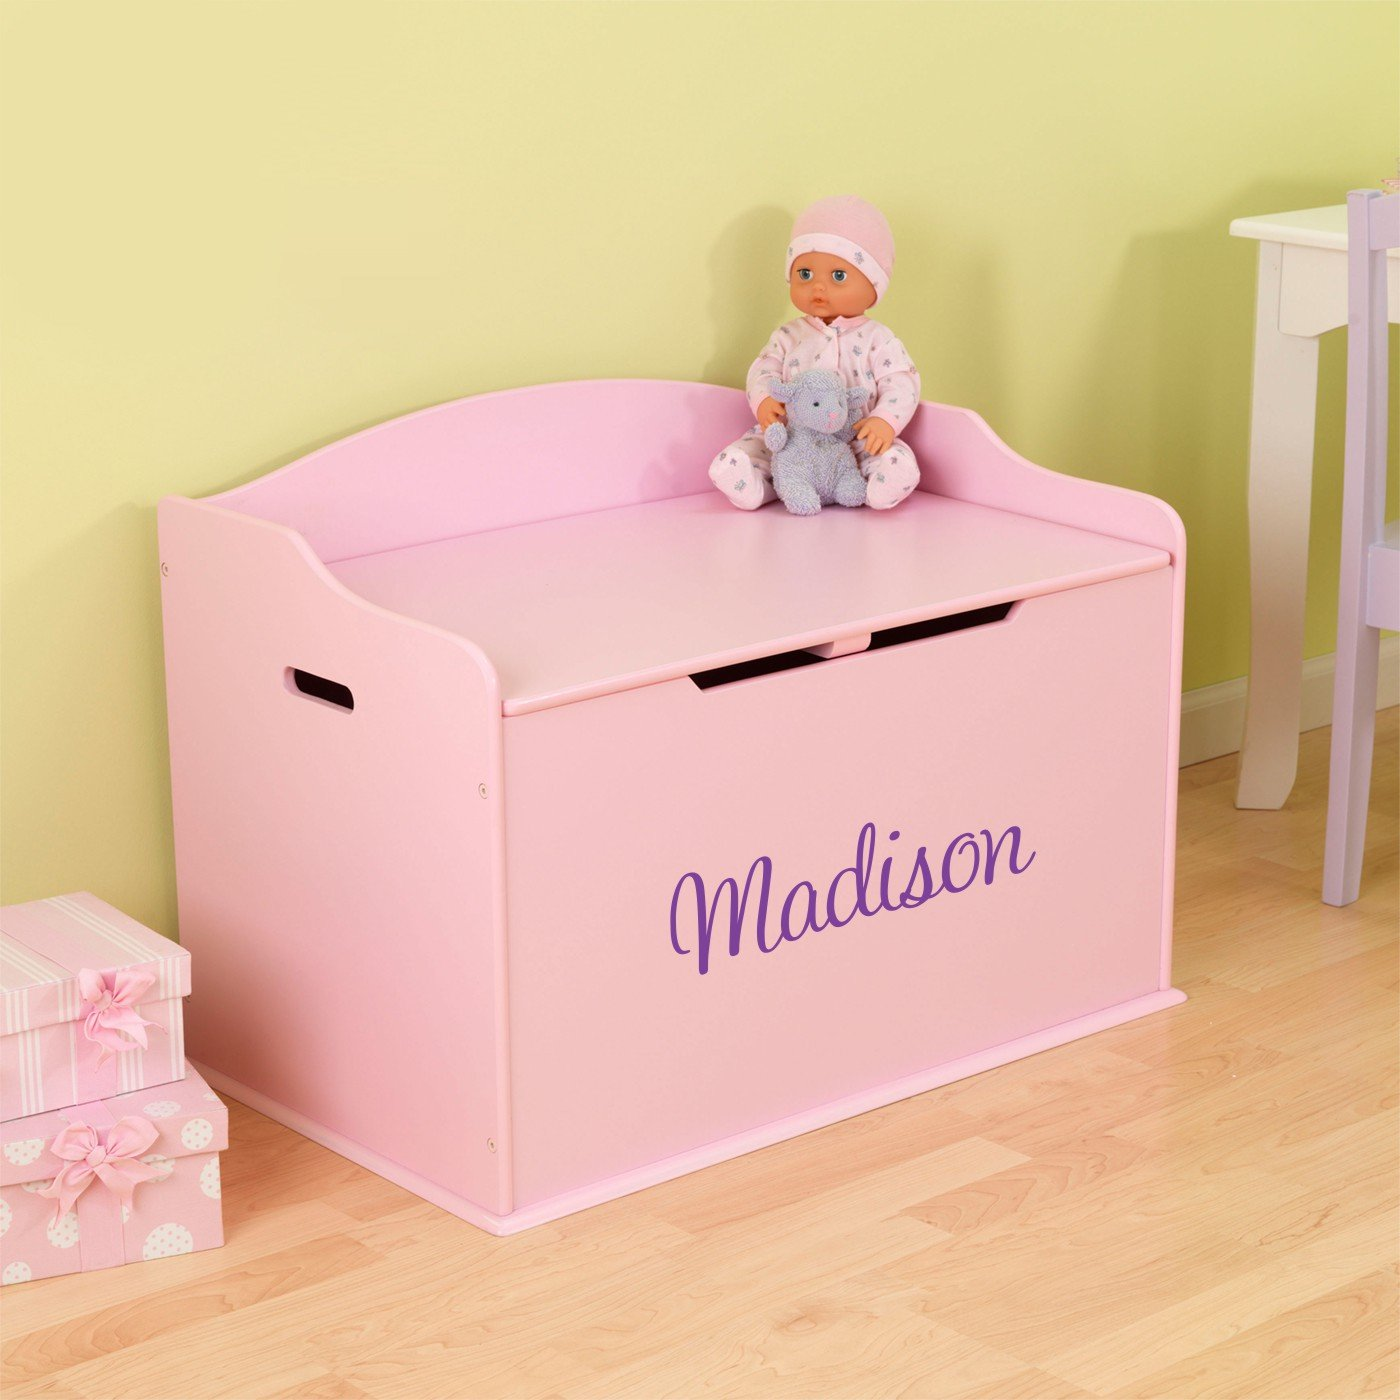 Personalized Modern Touch Toy Box - Pink with Custom Font Choices